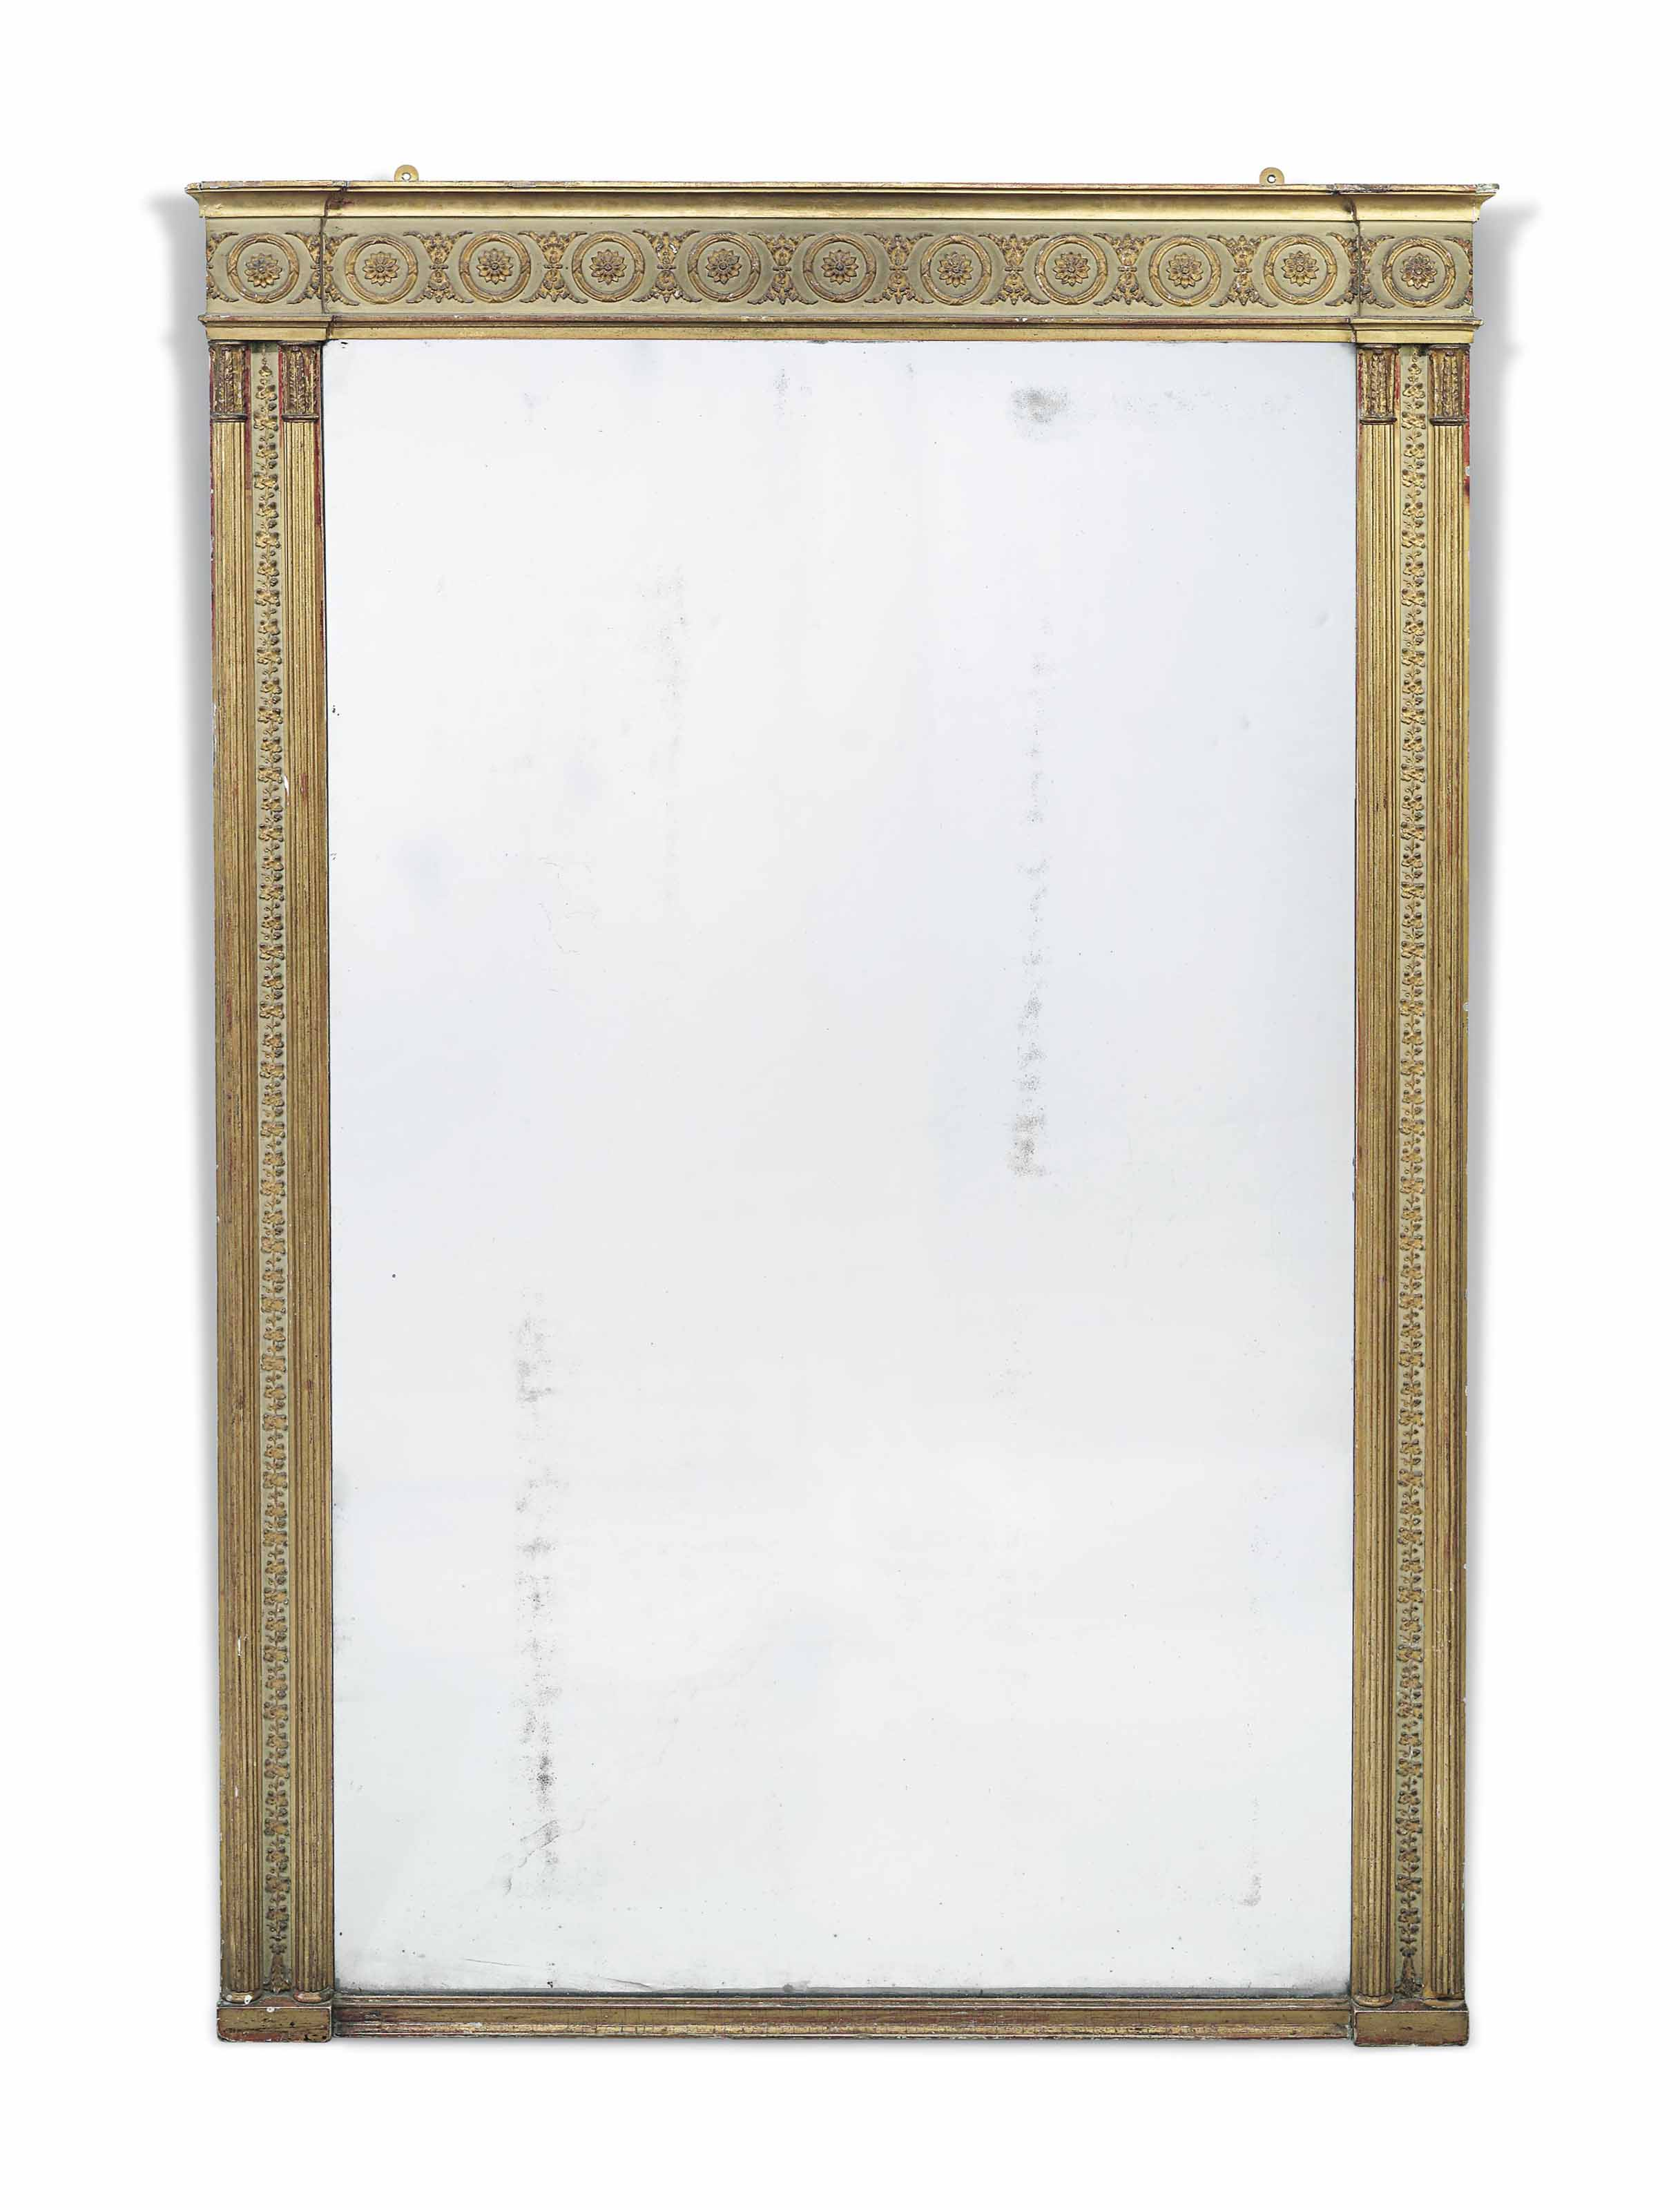 A REGENCY CREAM-PAINTED, GILTWOOD AND GILT-COMPOSITION OVERMANTEL MIRROR